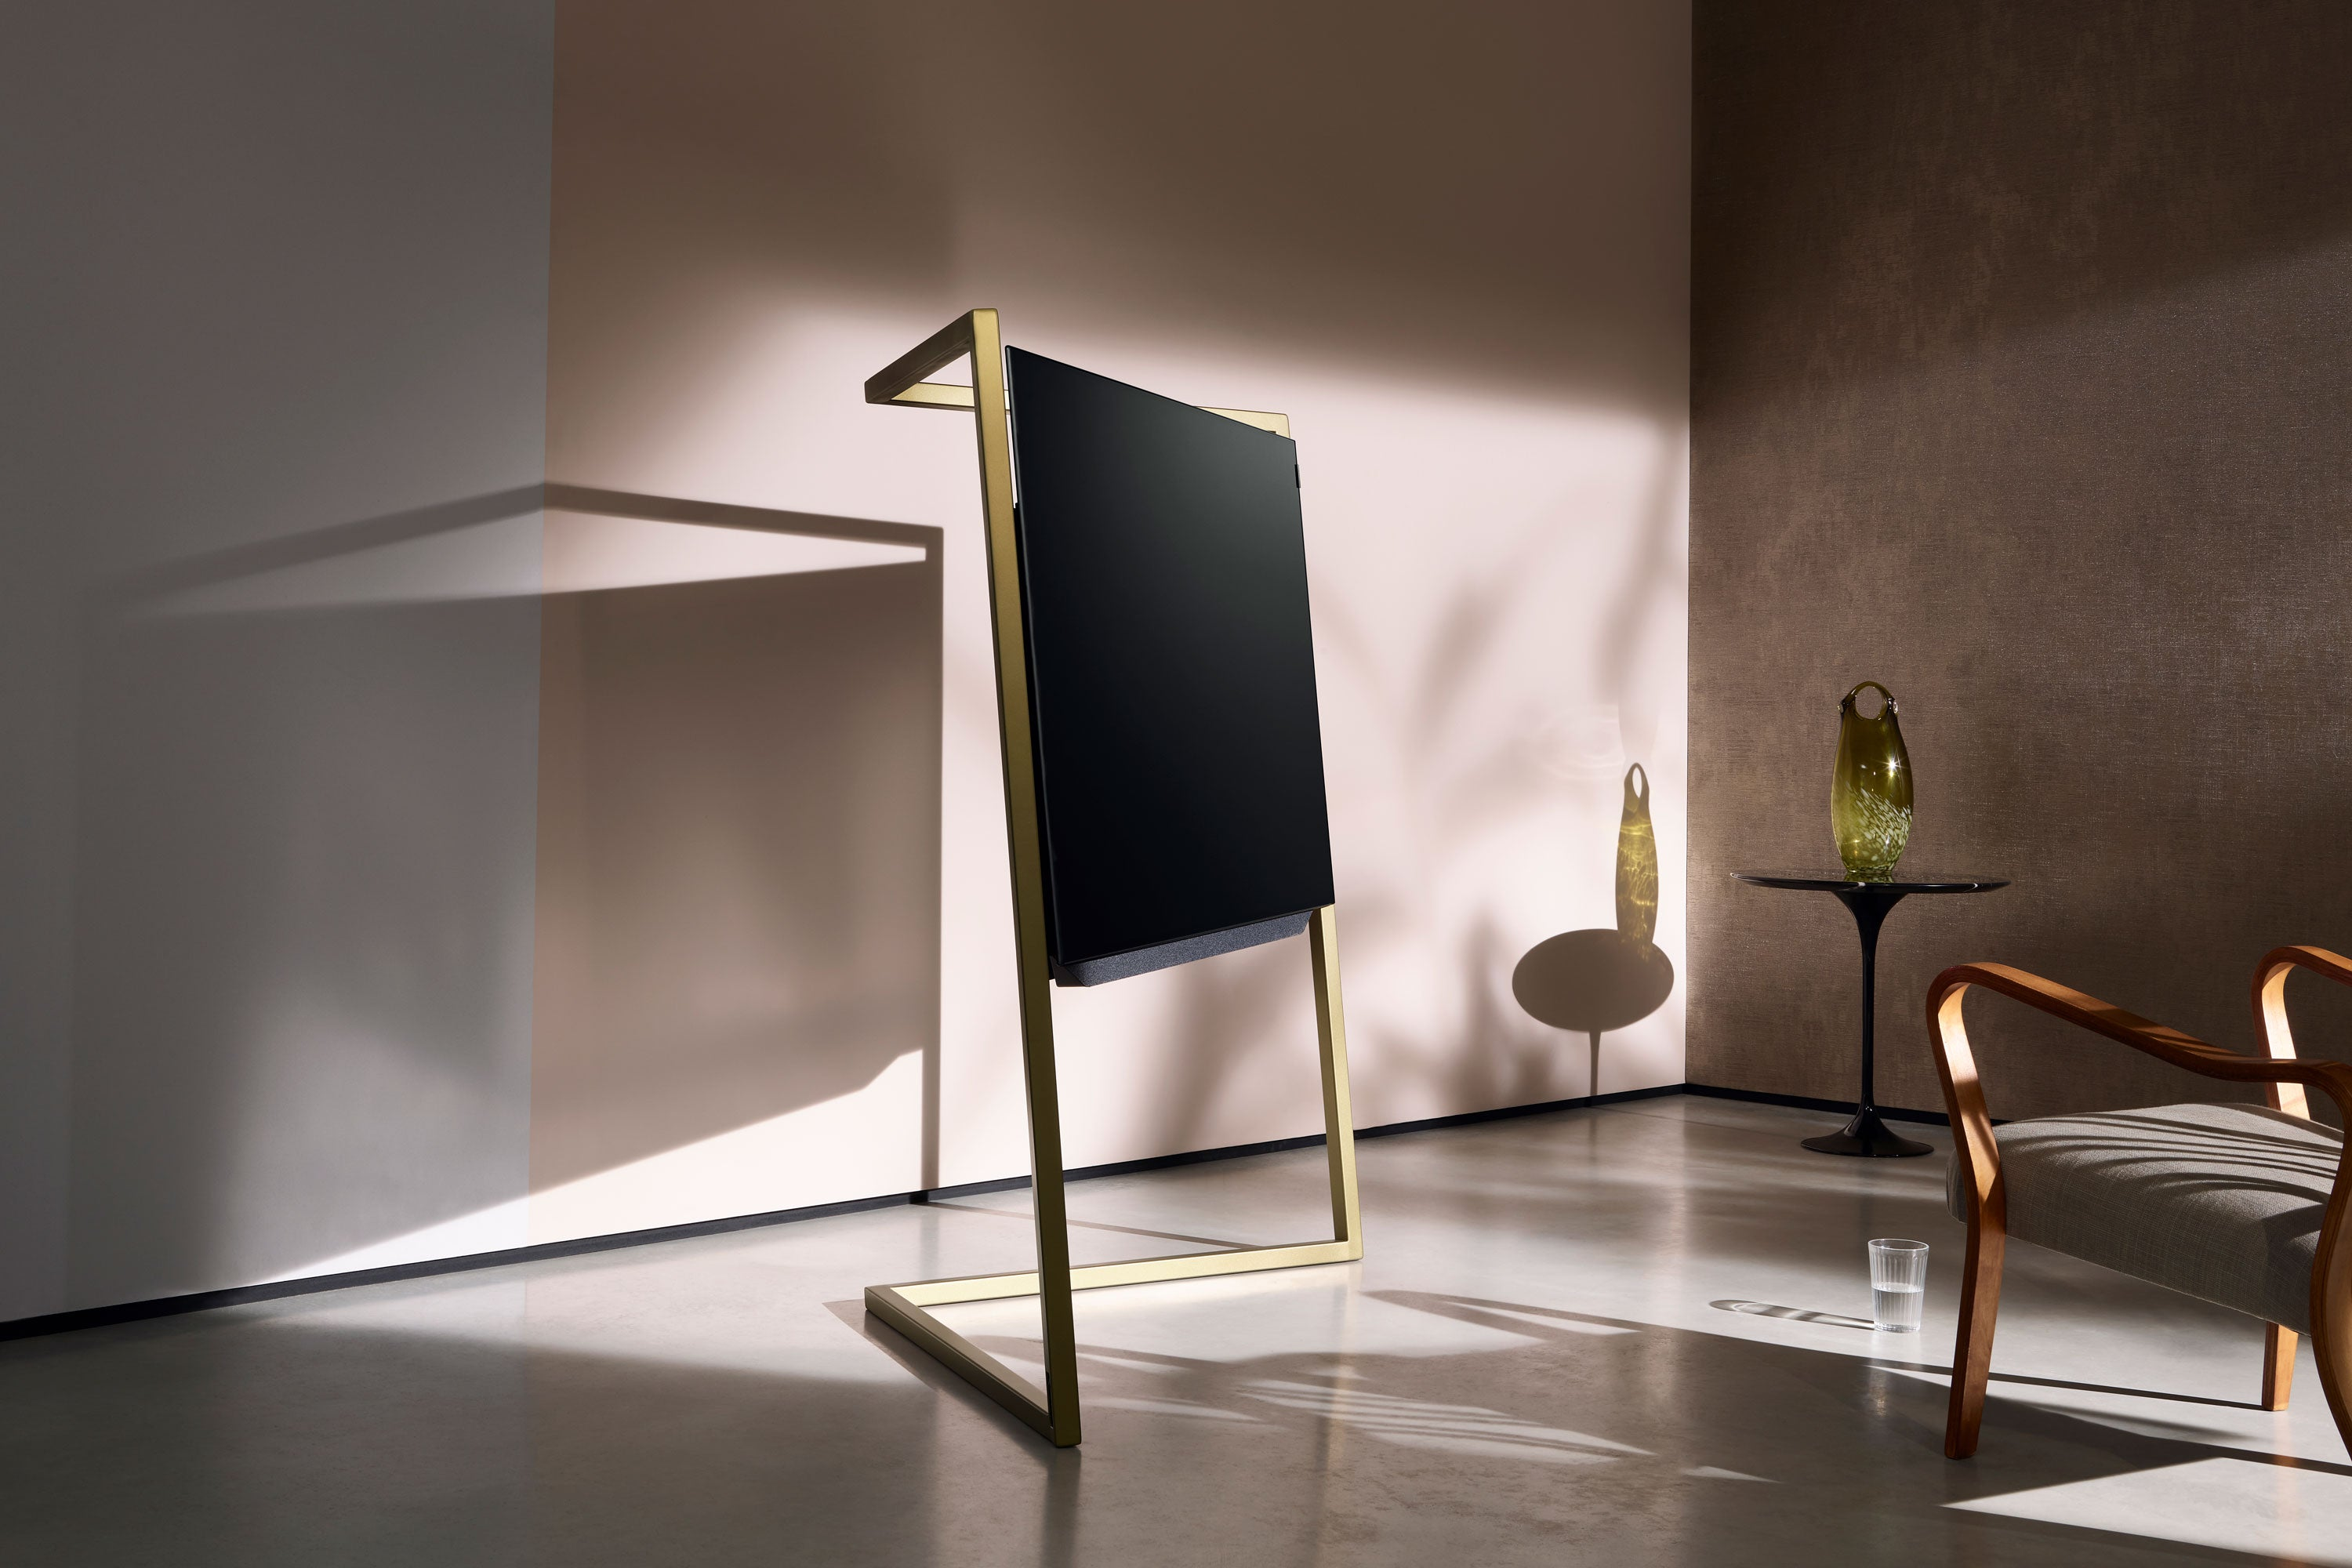 Loewe Bild 9 OLED Television Product Design by Bodo Sperlein